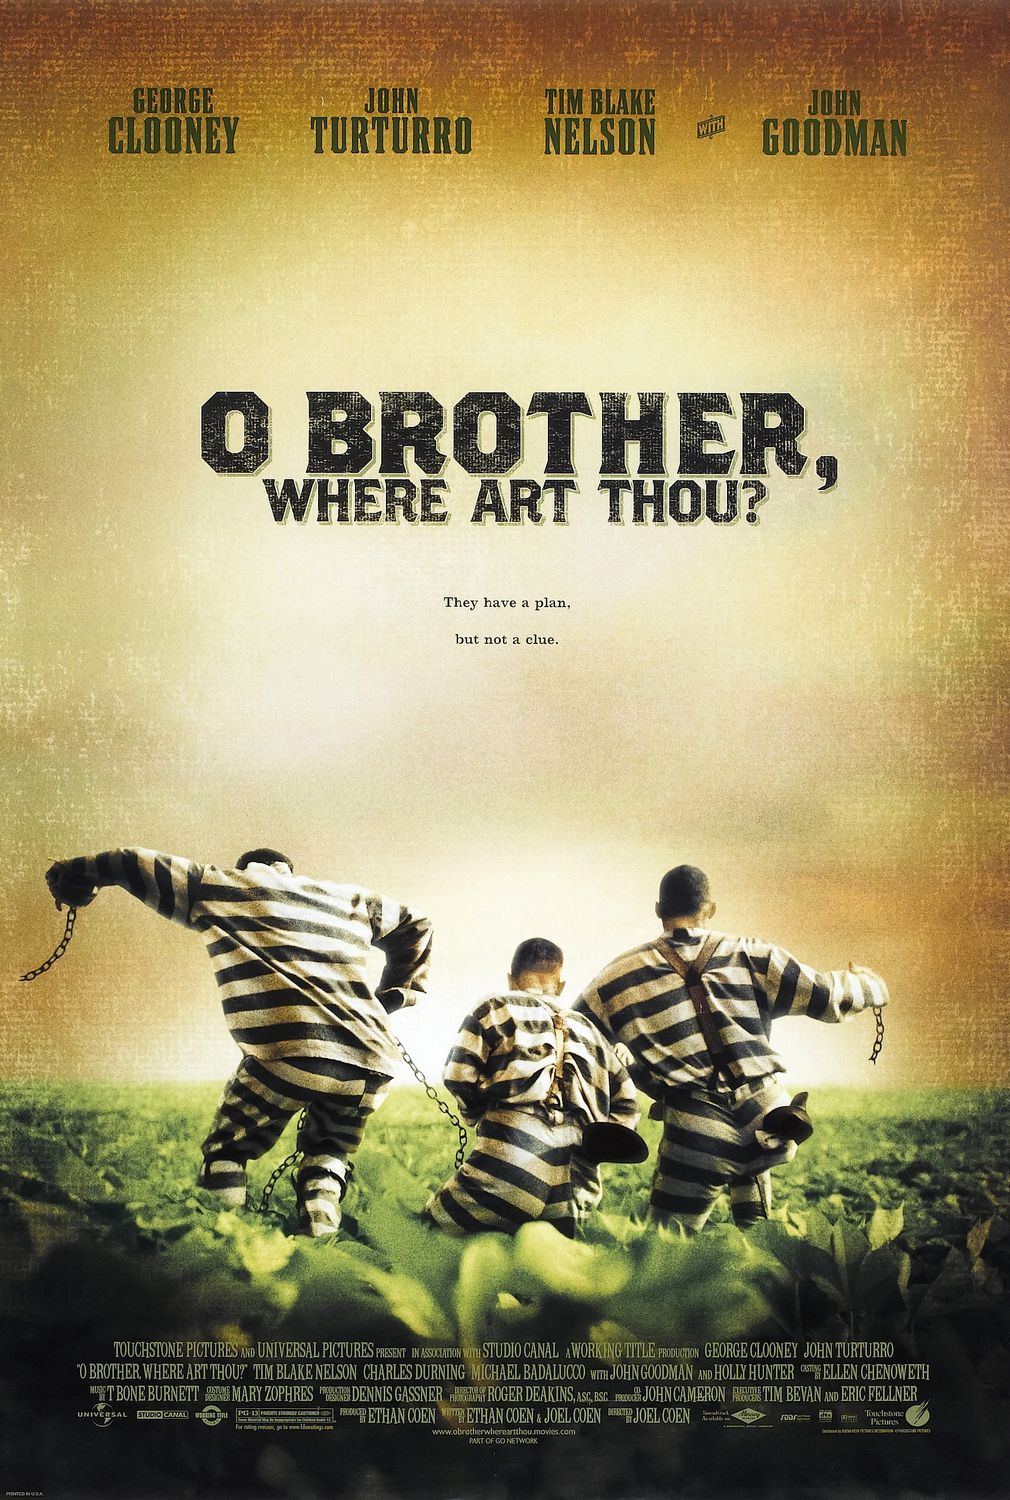 006 O Brother Where Art Thou Essay Example Ver1 Xlg Striking And The Odyssey Comparison Vs Compared To Full